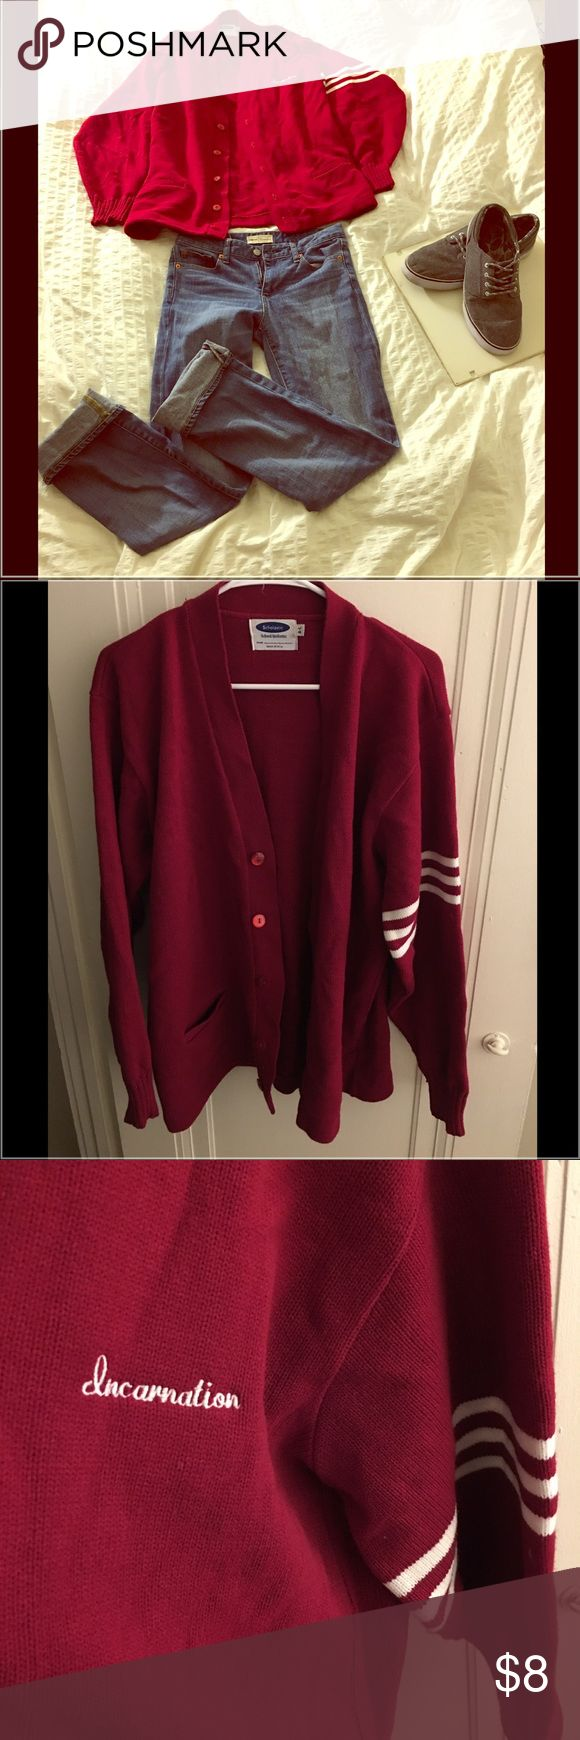 """Varsity sweater Heavy varsity sweater with vintage style stripes on left arm. Perfect for and """"Boyfriend"""" inspired outfit. Sweaters Cardigans"""